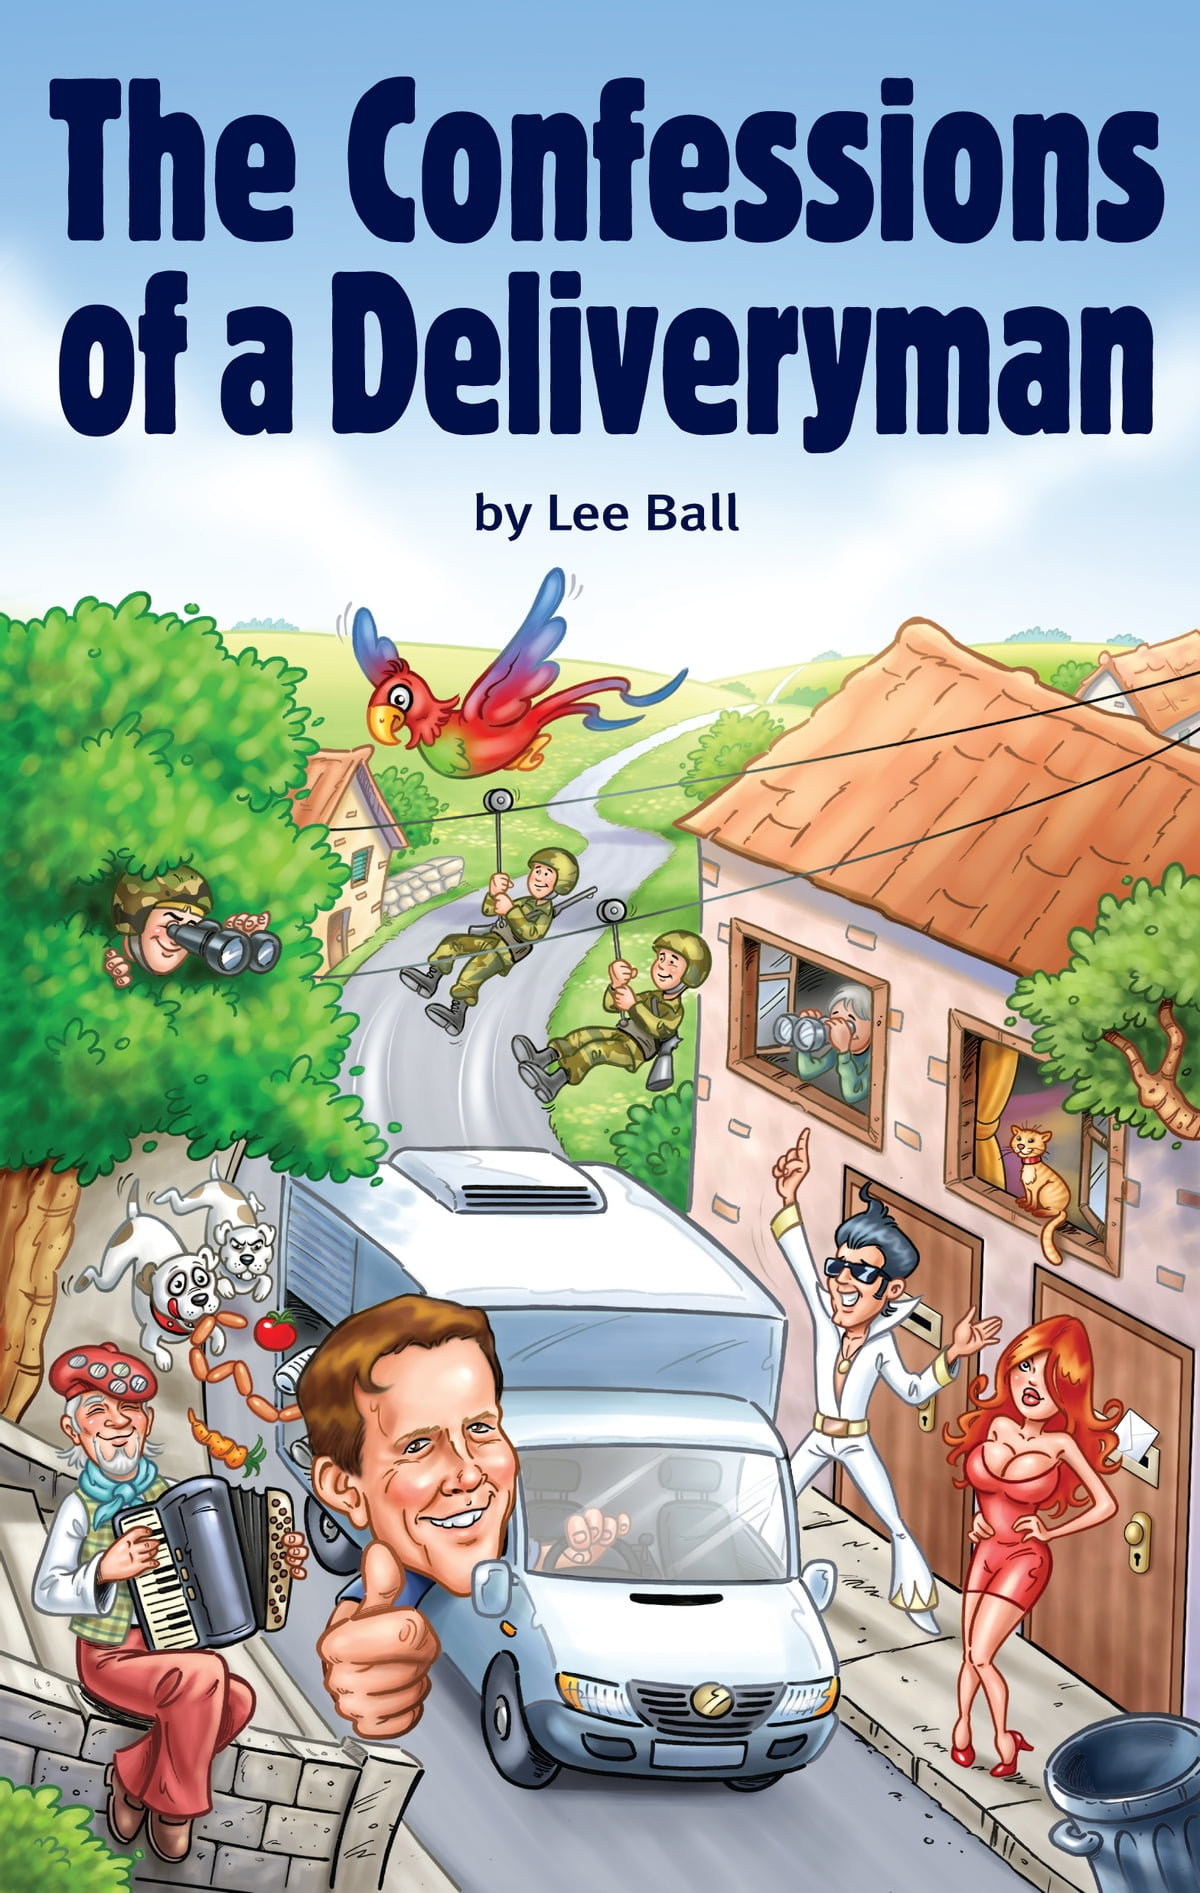 The confessions of a deliveryman ebook by lee ball 9781458196675 the confessions of a deliveryman ebook by lee ball 9781458196675 rakuten kobo fandeluxe Ebook collections